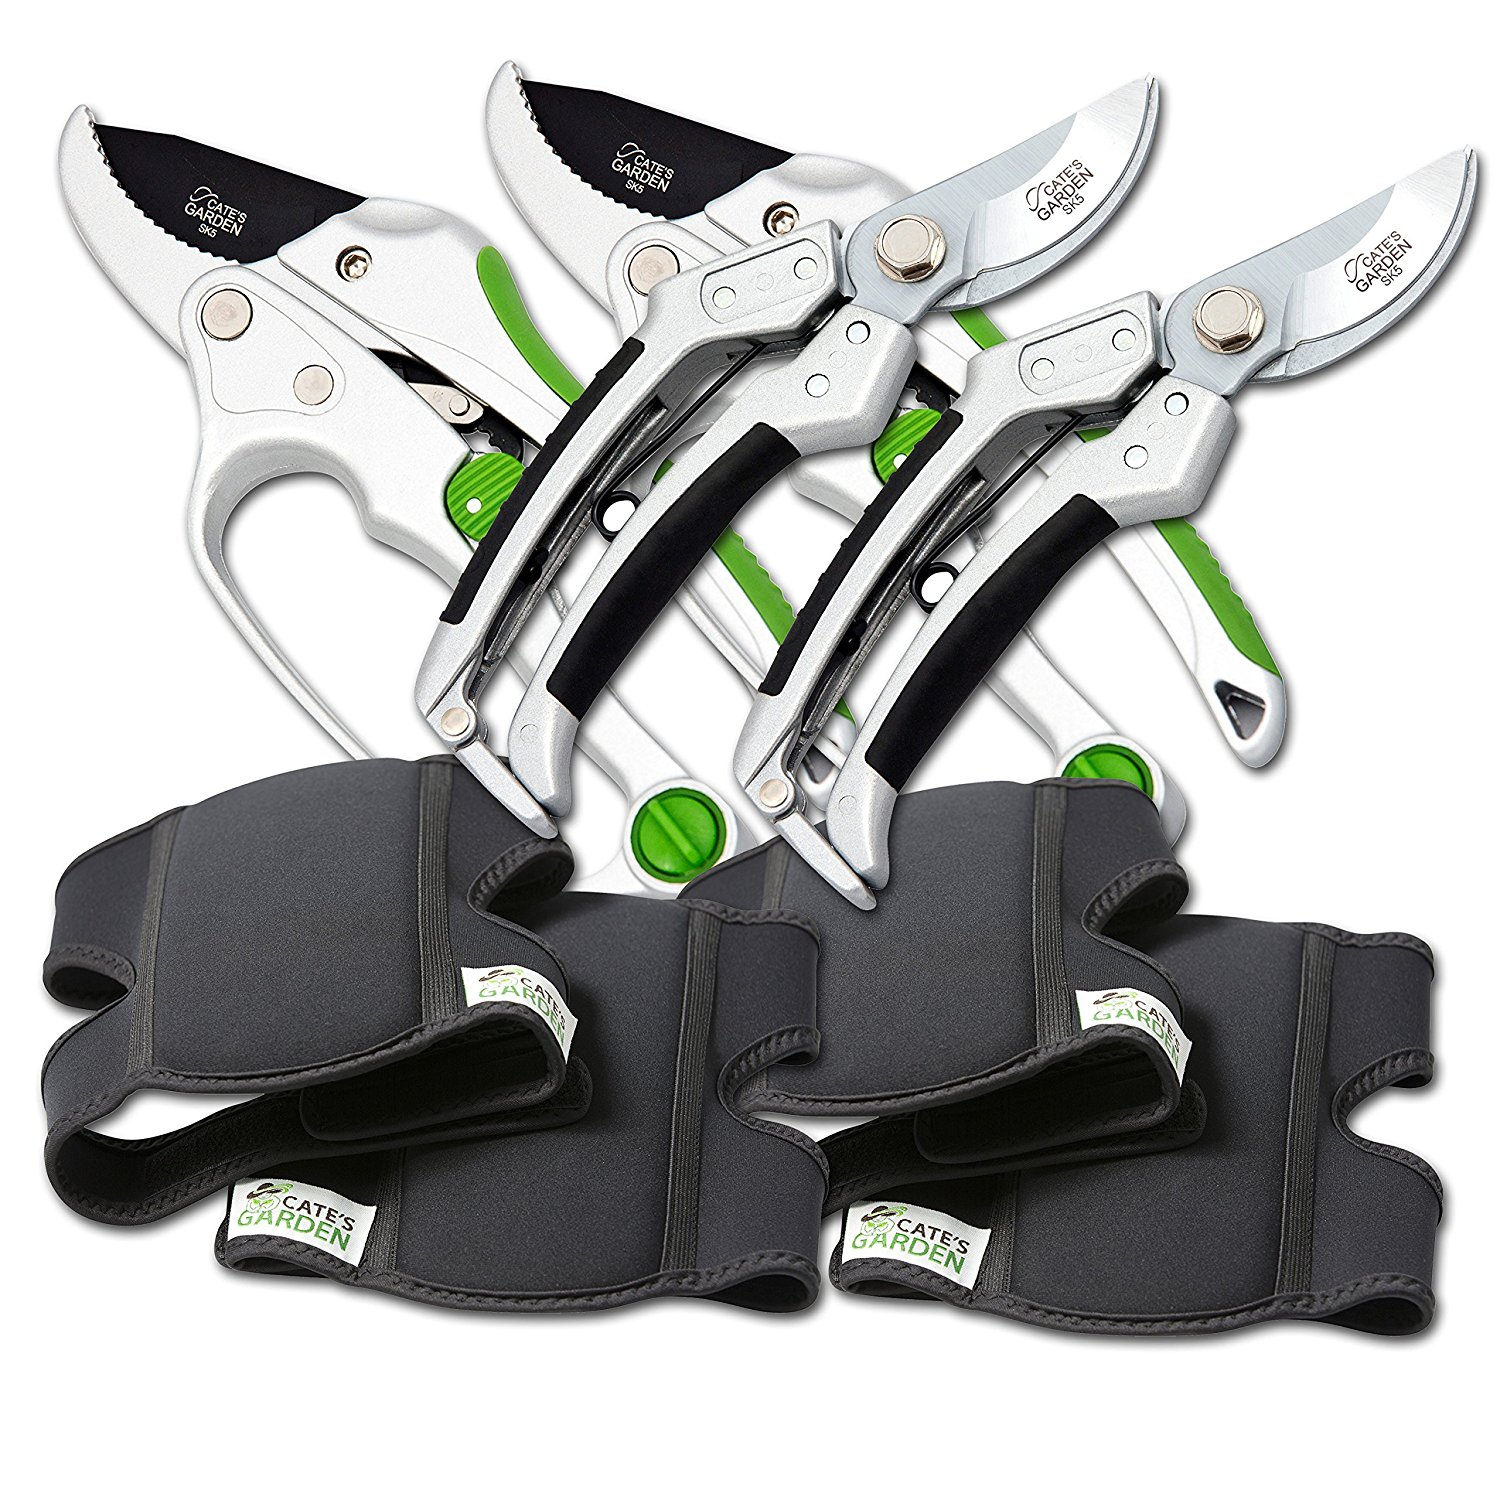 "Cate's Garden 6-Piece Garden Tool Set- 2 Ultra Comfort Knee Pads, 2 Bypass & 2 Ratchet Pruning Shears 8"" Easy Action Anvil-type Premium Hand Pruner - Heavy Duty SK5 High Carbon Blades"